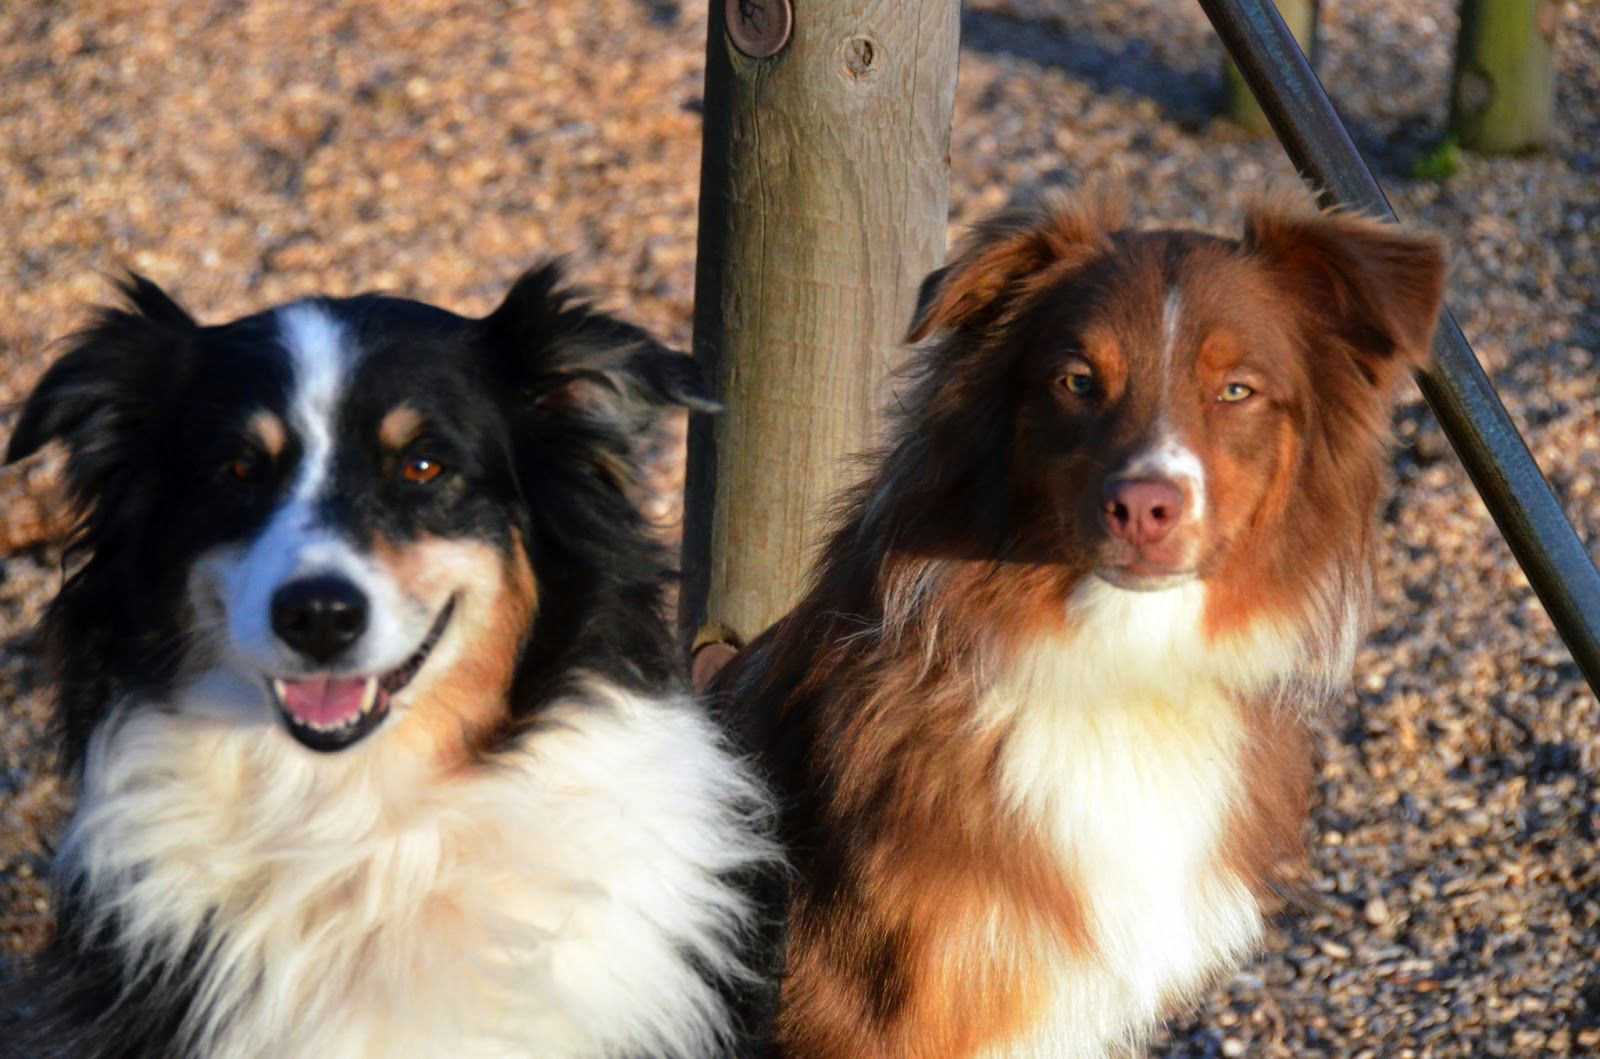 Aussies!  Red and Blue Tri Austrailian Shepherds.  What's not to love?